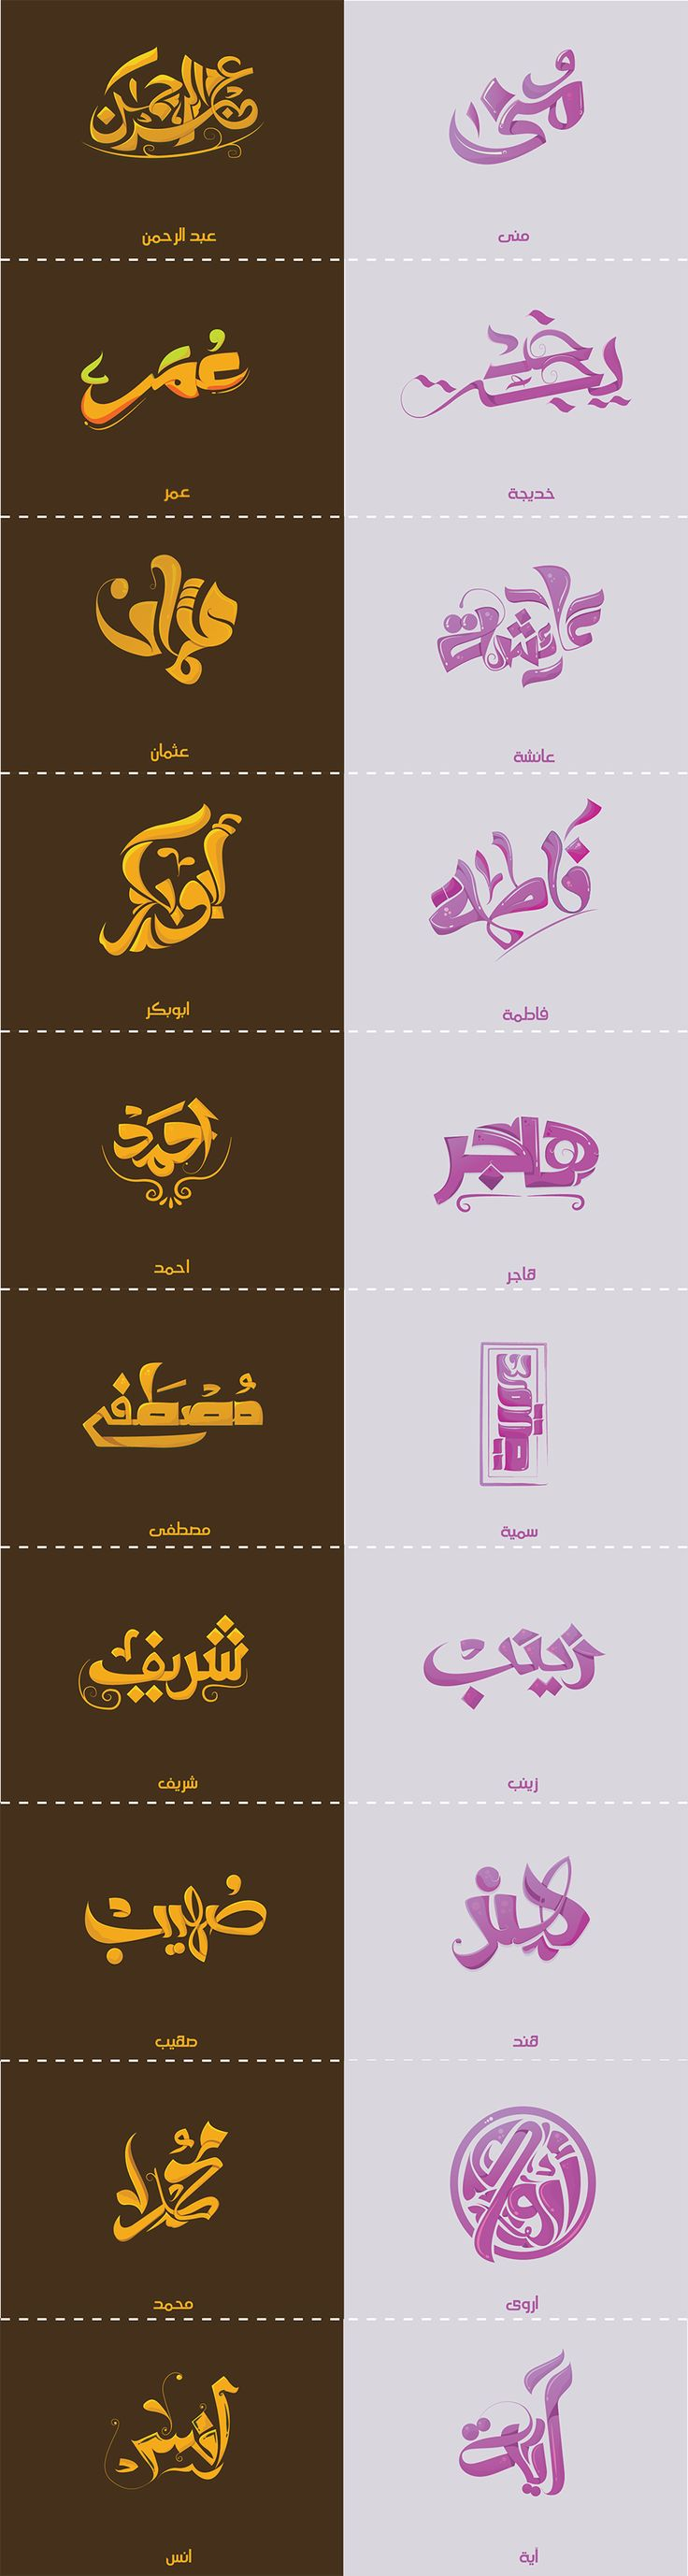 DesertRose,;,20 Arabic Typography Names on Behance,;,